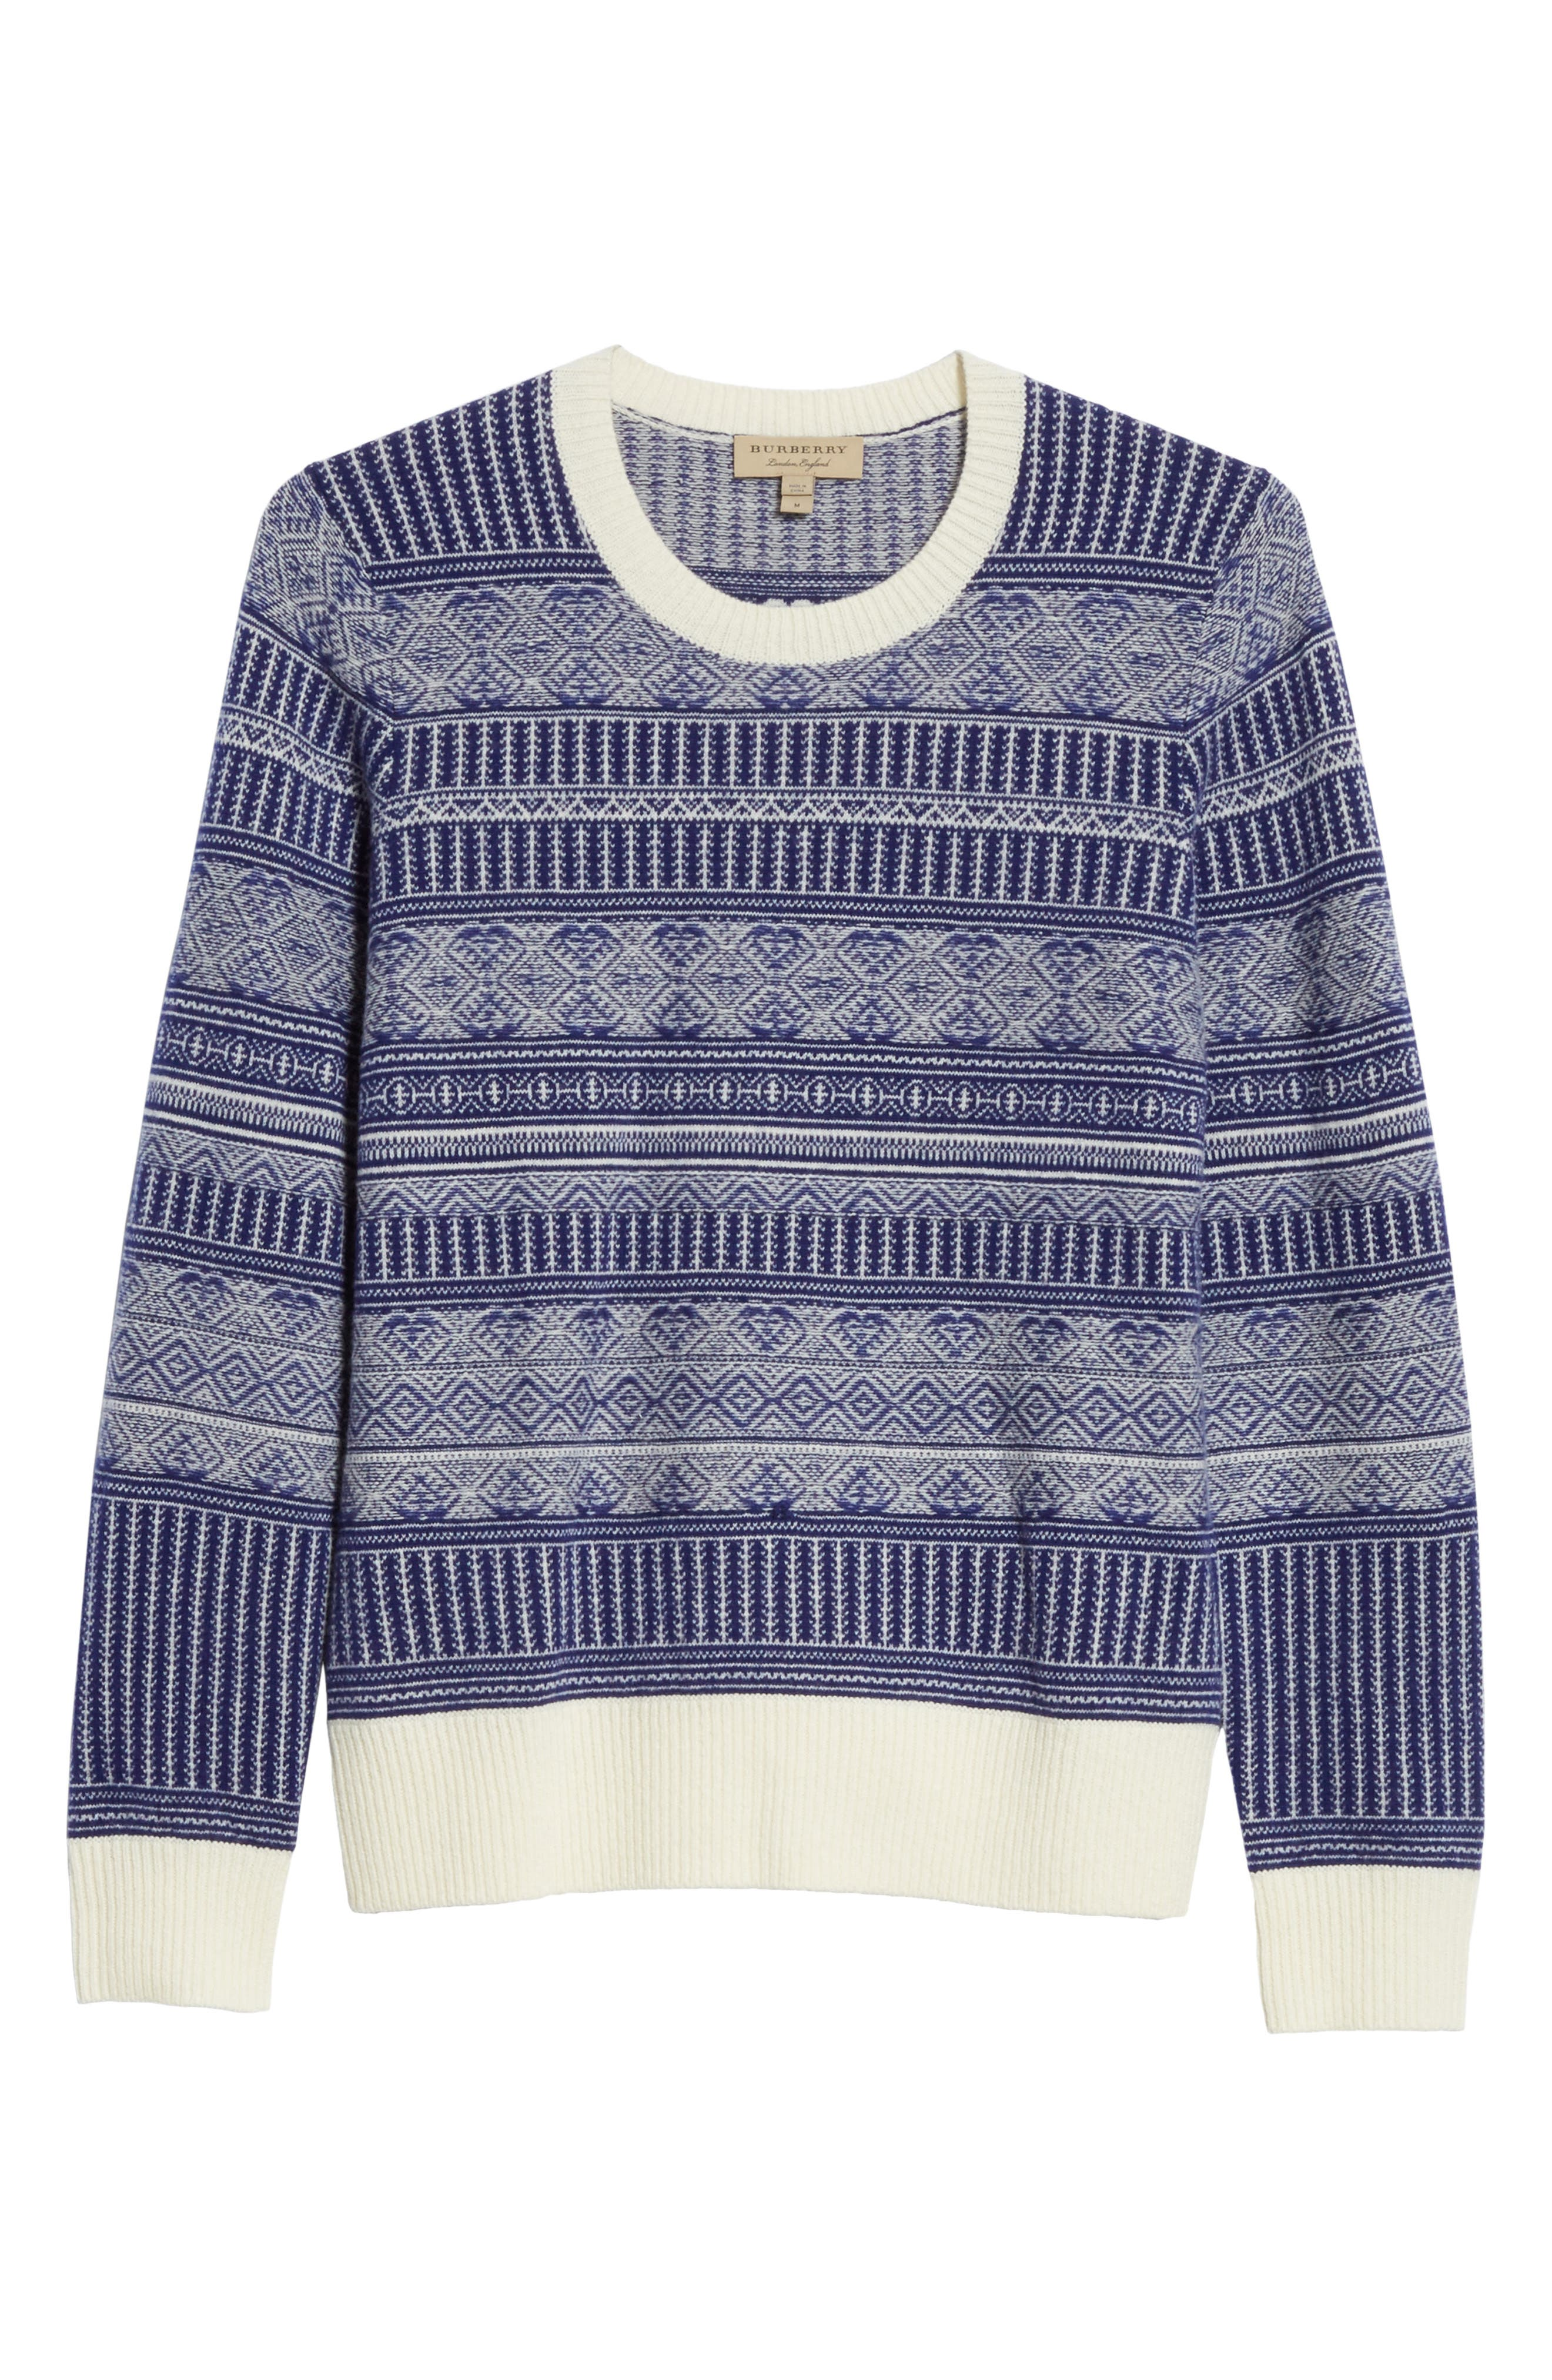 Tredway Wool & Cashmere Sweater,                             Alternate thumbnail 6, color,                             410